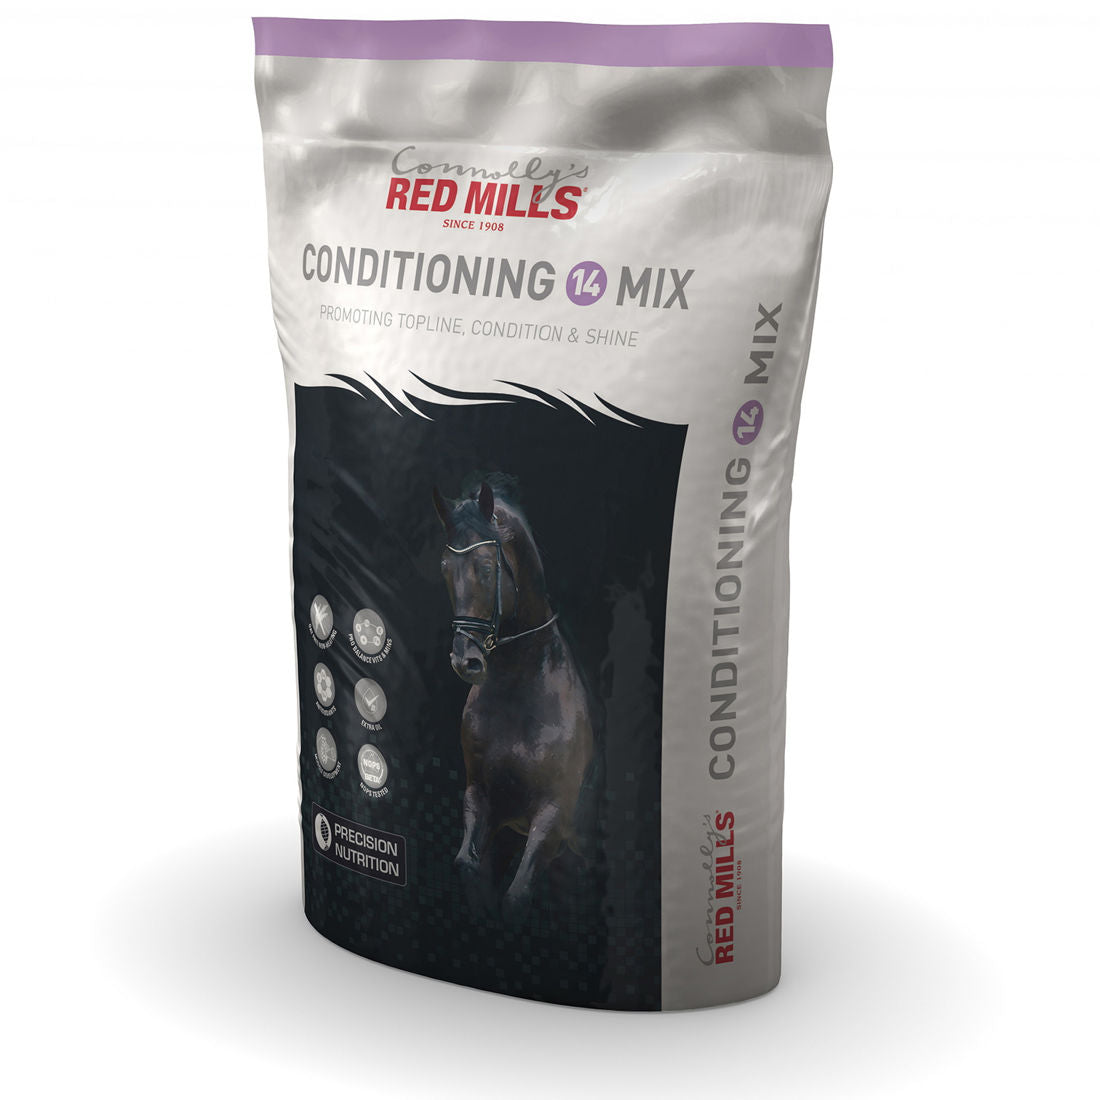 Red Mills Conditioning 14 Mix 20kg - free delivery